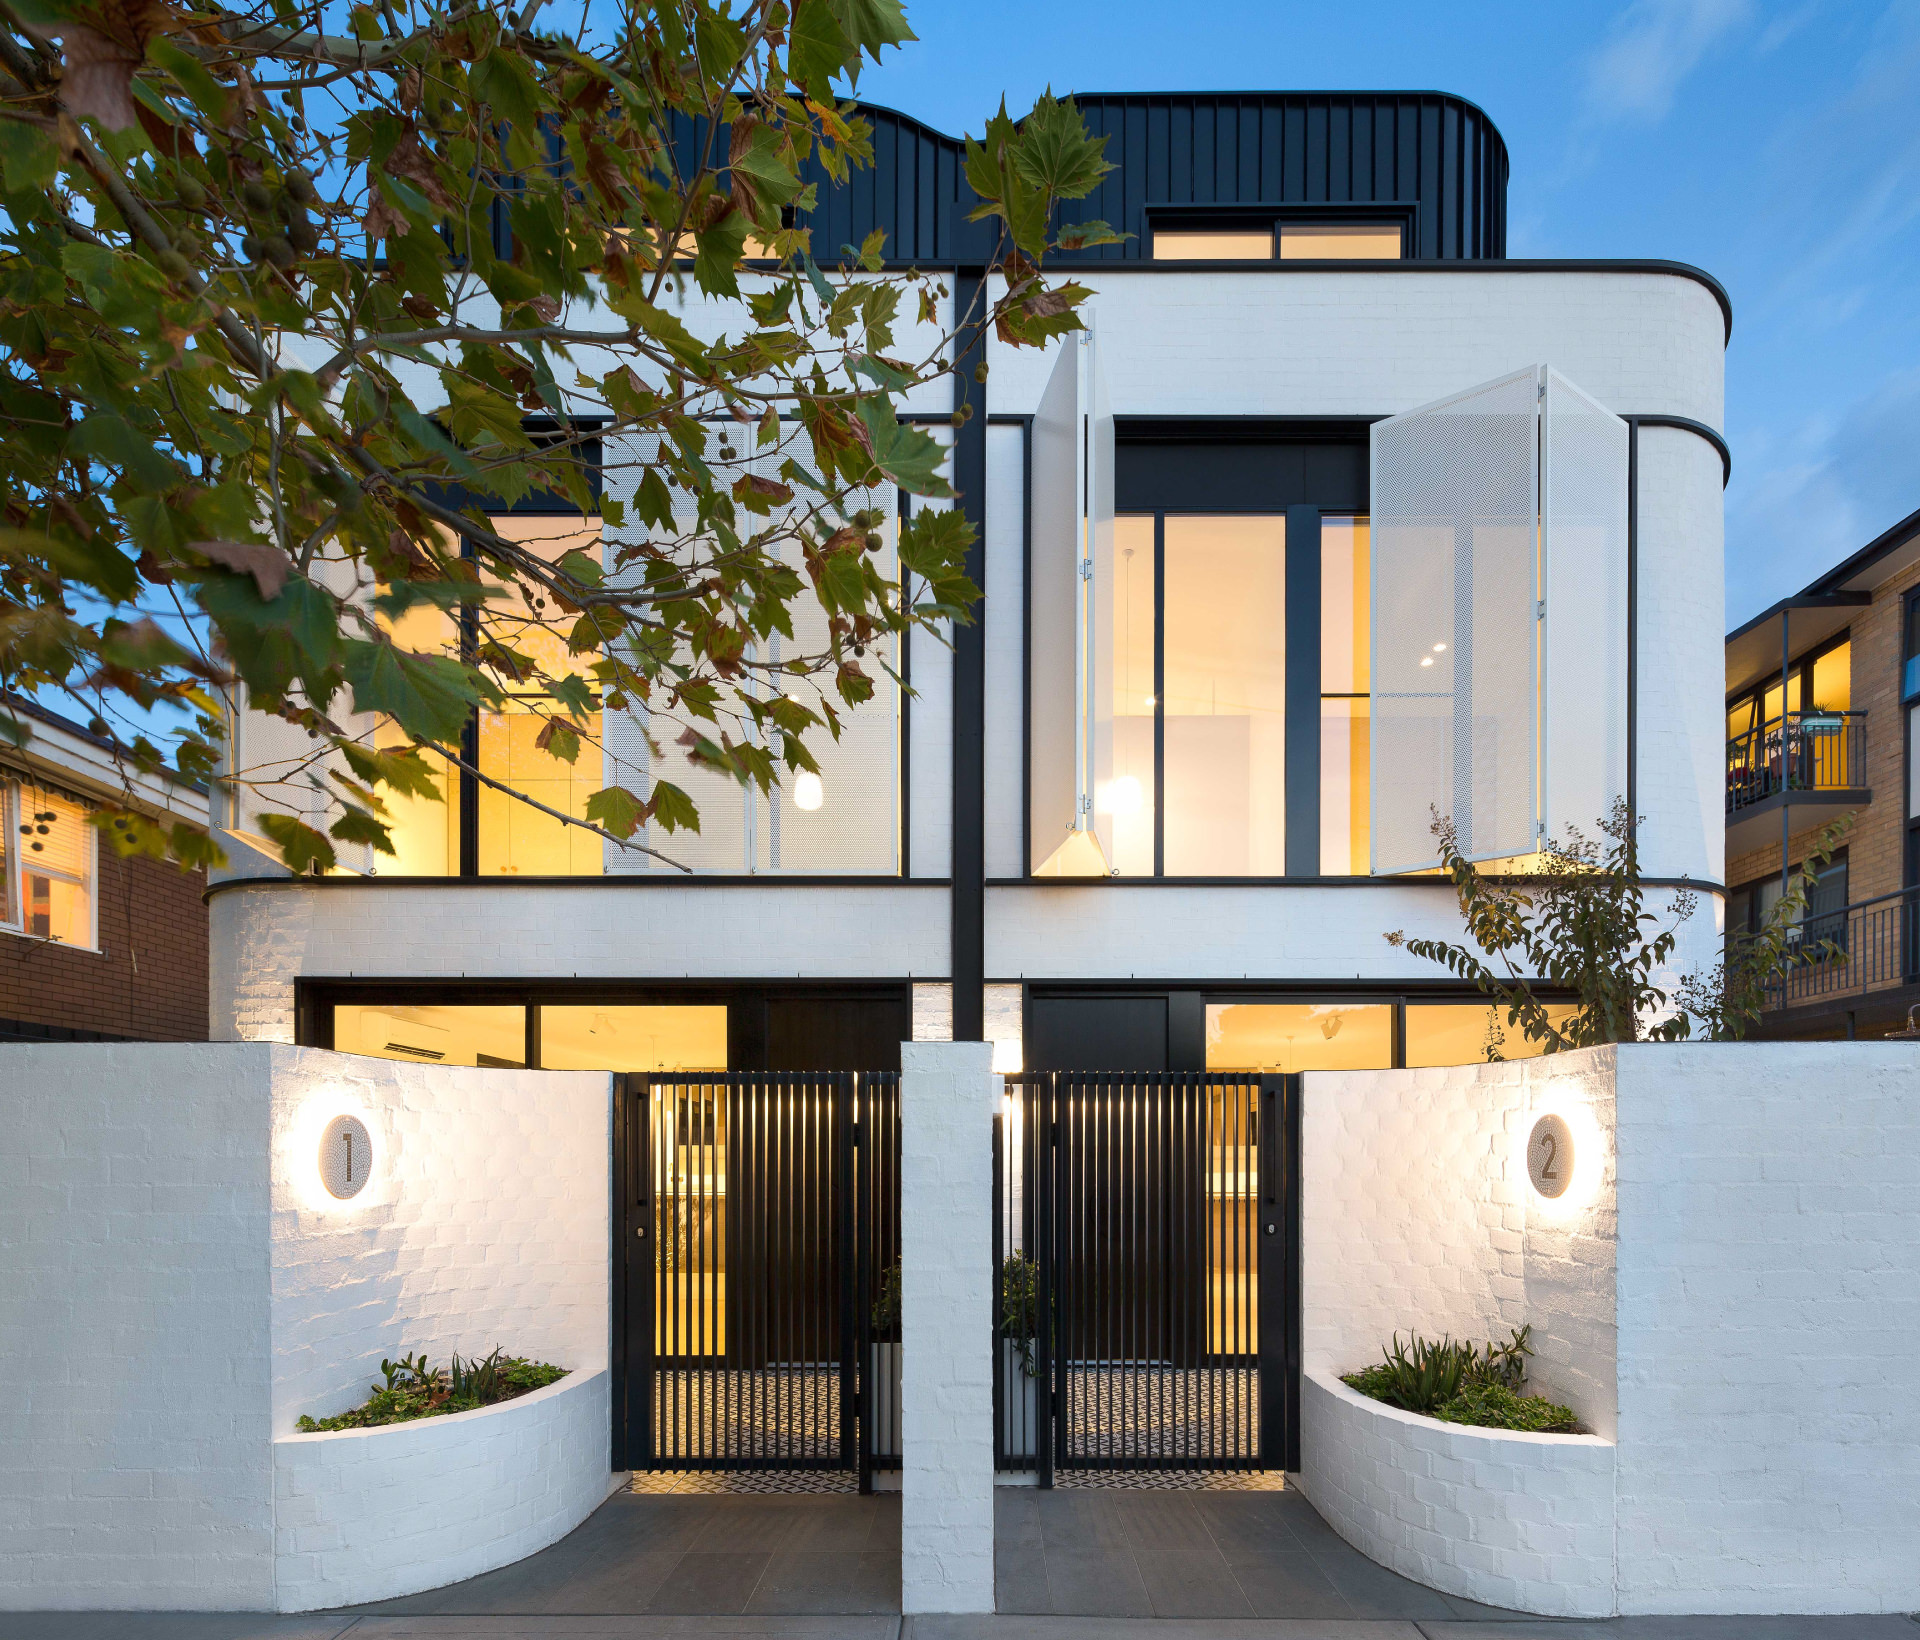 Cera Stribley Architecture Interior Design Pine Ave Exterior residential street view